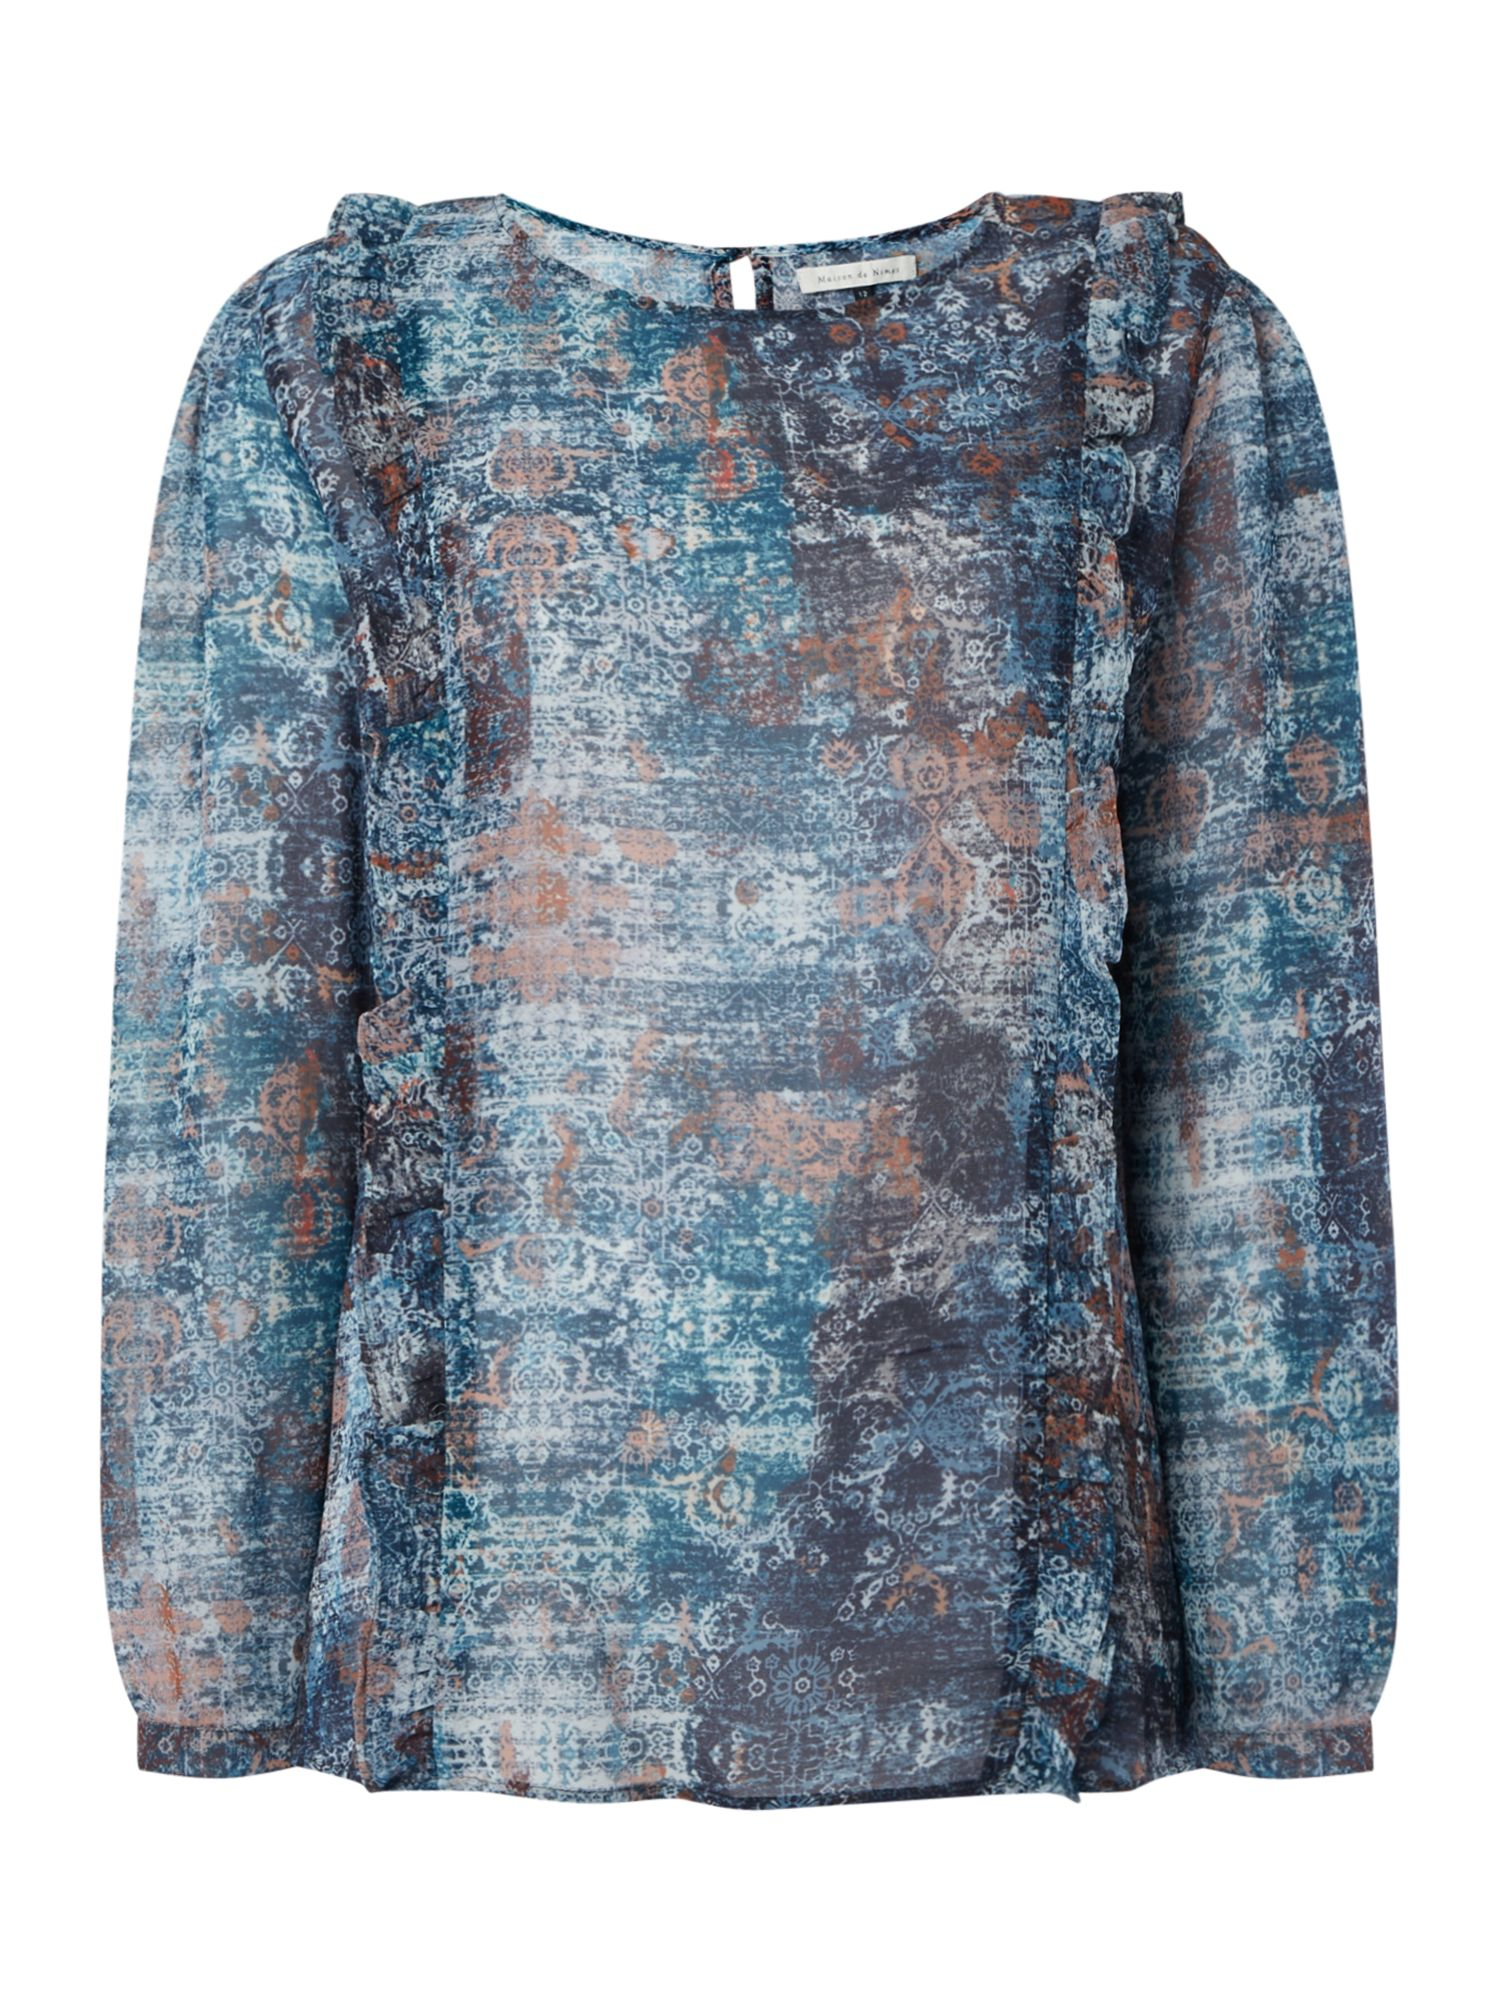 Maison De Nimes Wild Ranch Tapestry Print Blouse, Multi-Coloured